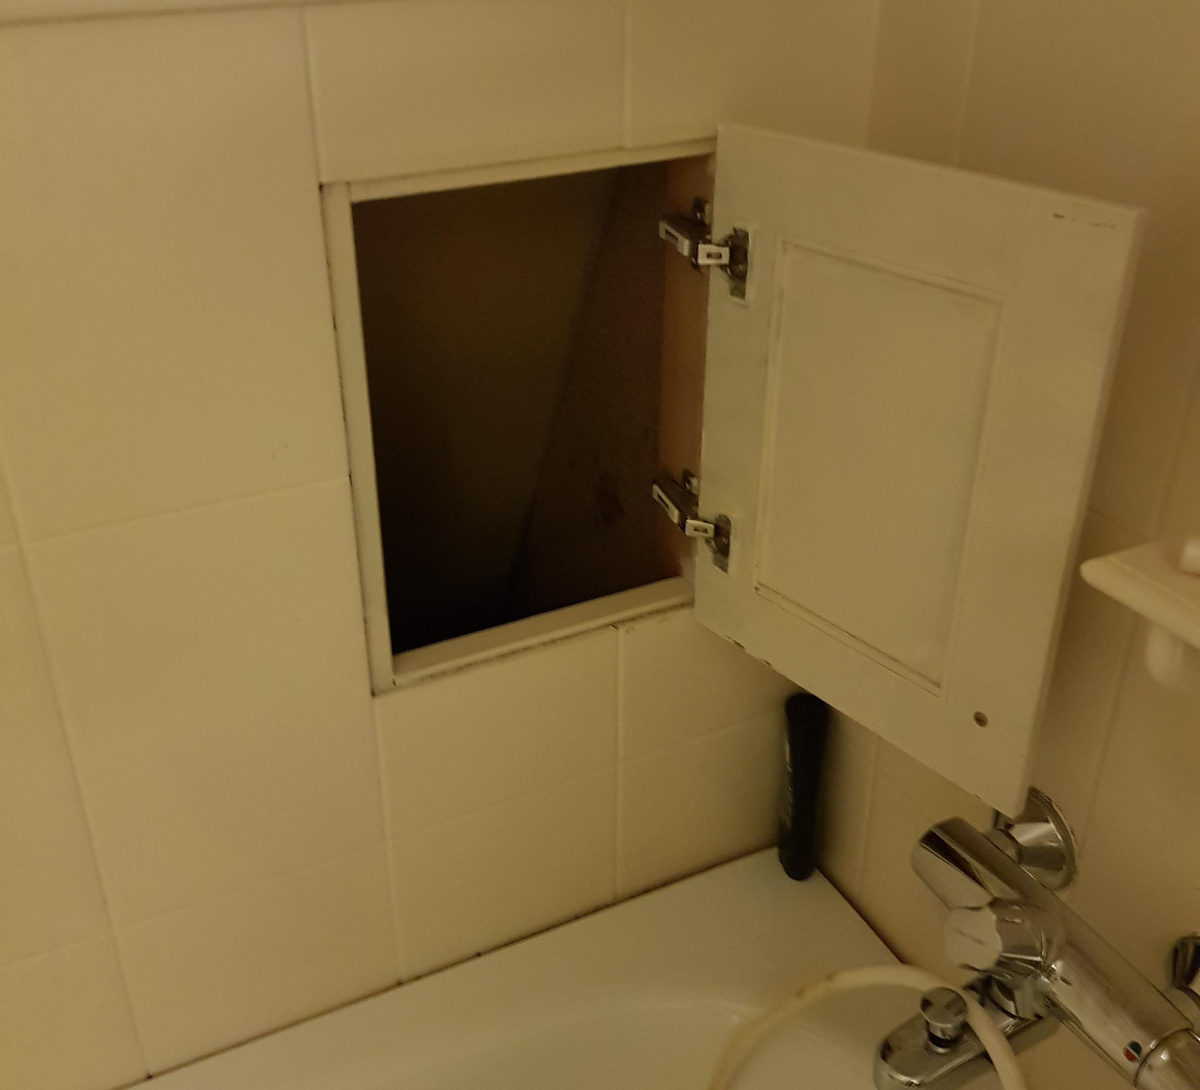 A laundry chute in the second-floor bathroom leads to the laundry room on the first floor.